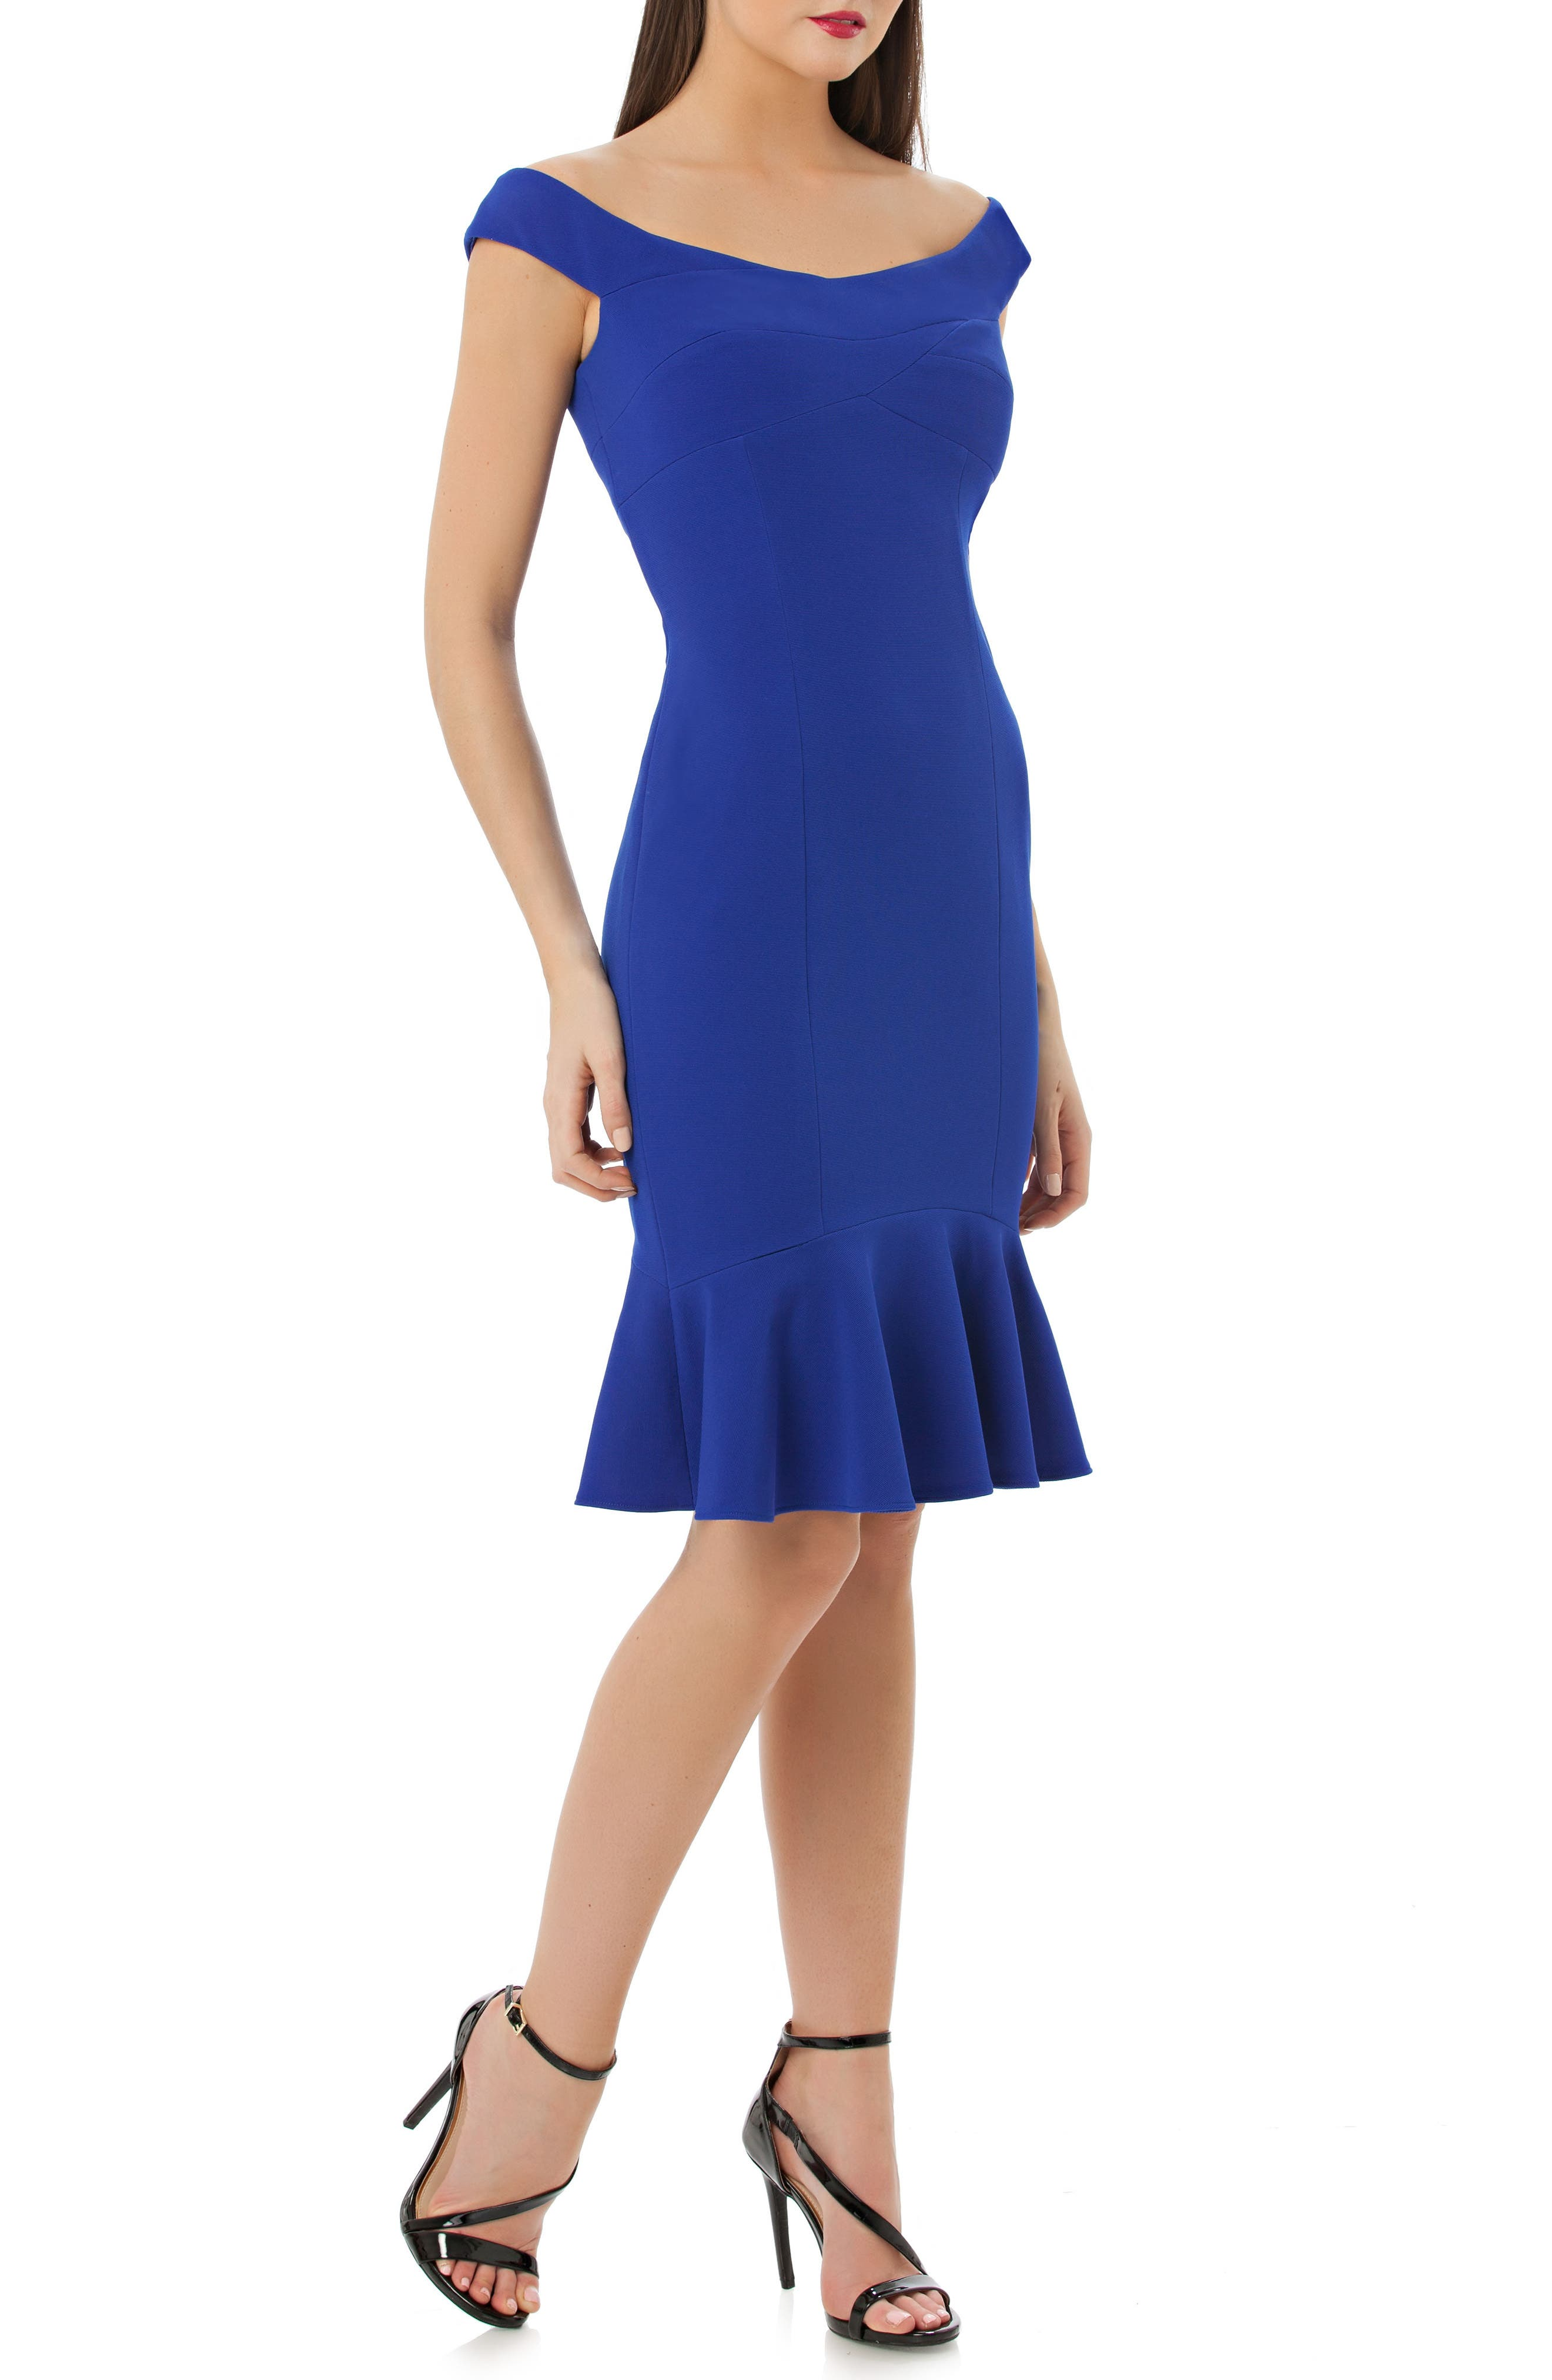 Off the Shoulder Cocktail Dress,                         Main,                         color, Royal